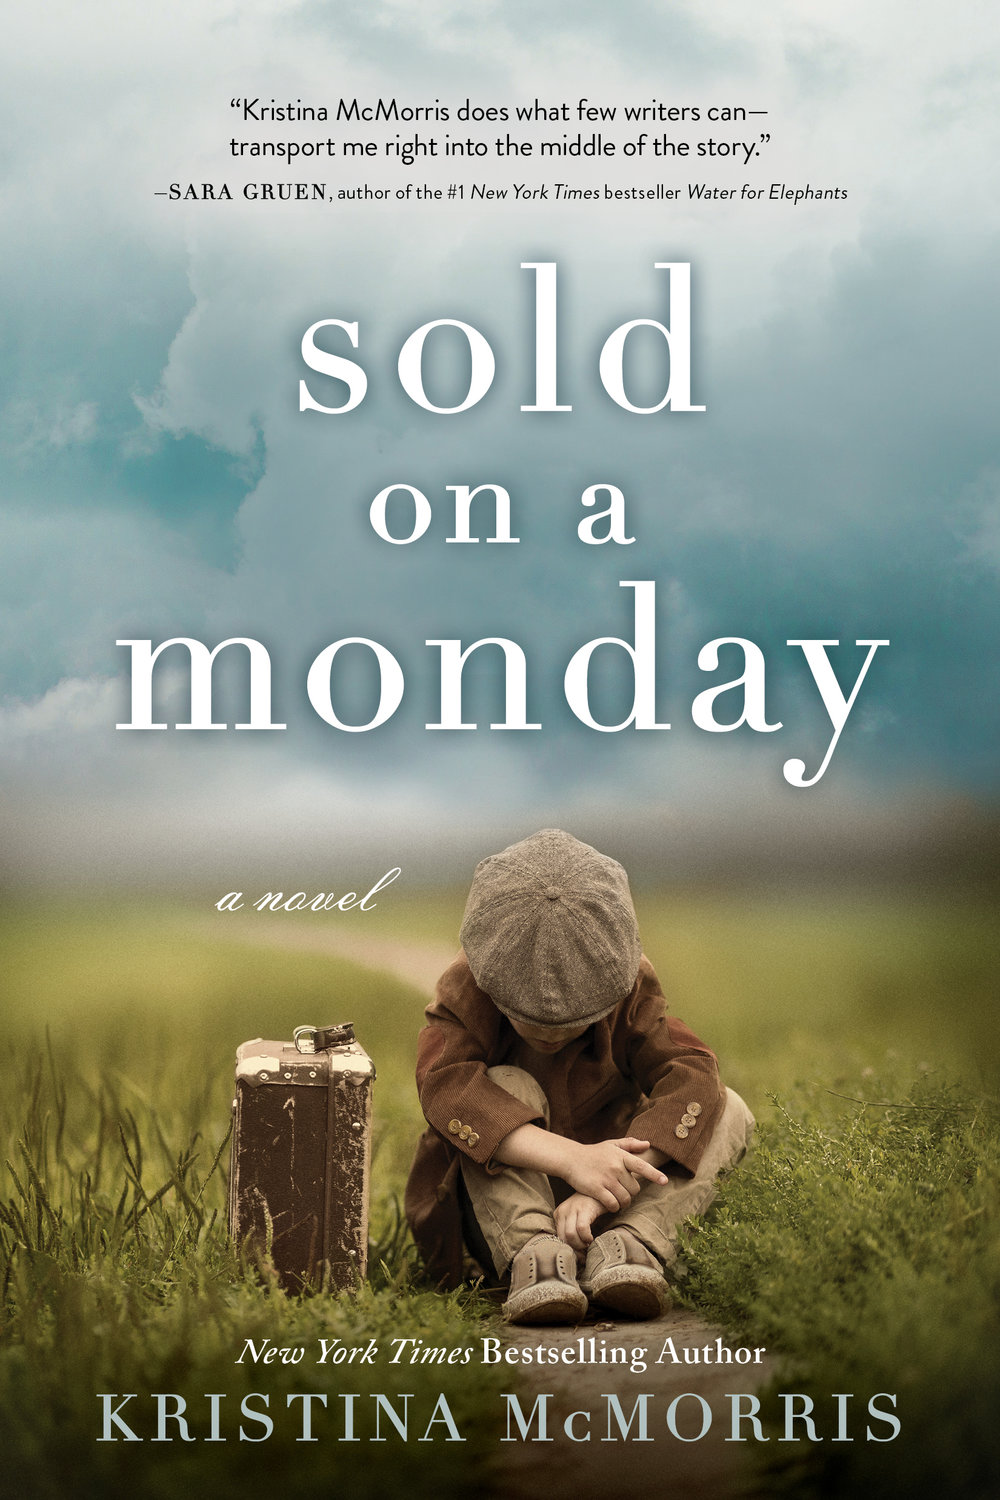 Sold on a Monday  by Kristina McMorris  Sourcebooks --- August 28, 2018